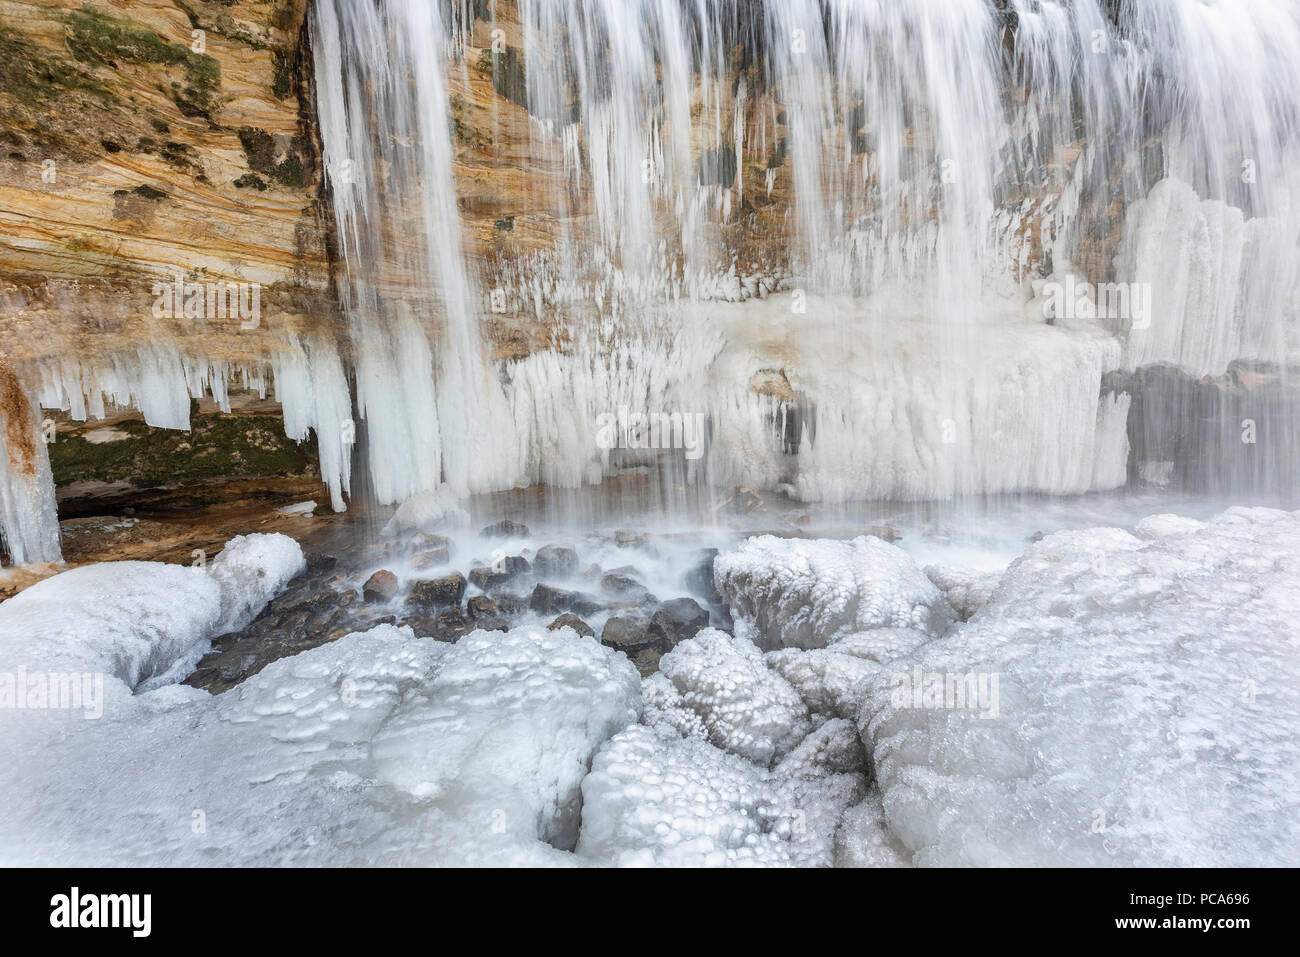 Frozen Cascade Falls, early April, Osceola, WI, USA, by Dominique Braud/Dembinsky Photo Assoc - Stock Image